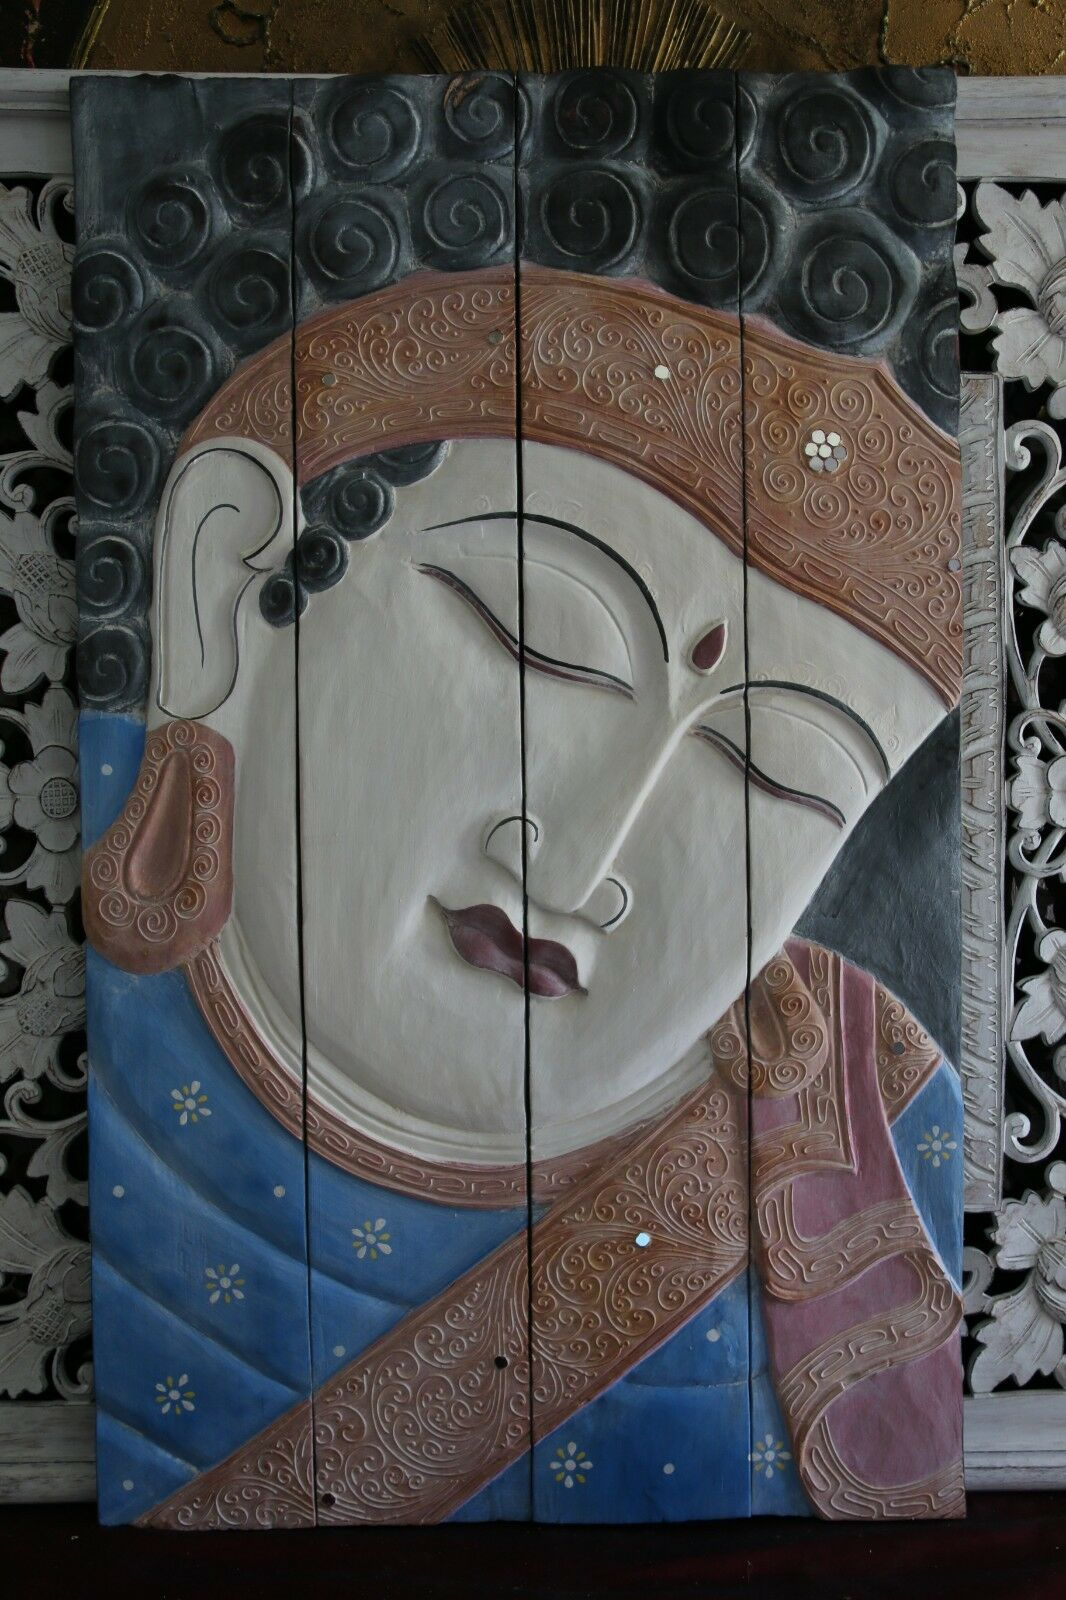 Balinese Hand Carved Wood Hinged Buddha Wall Panel - Bali Buddha Wall Panel 1m